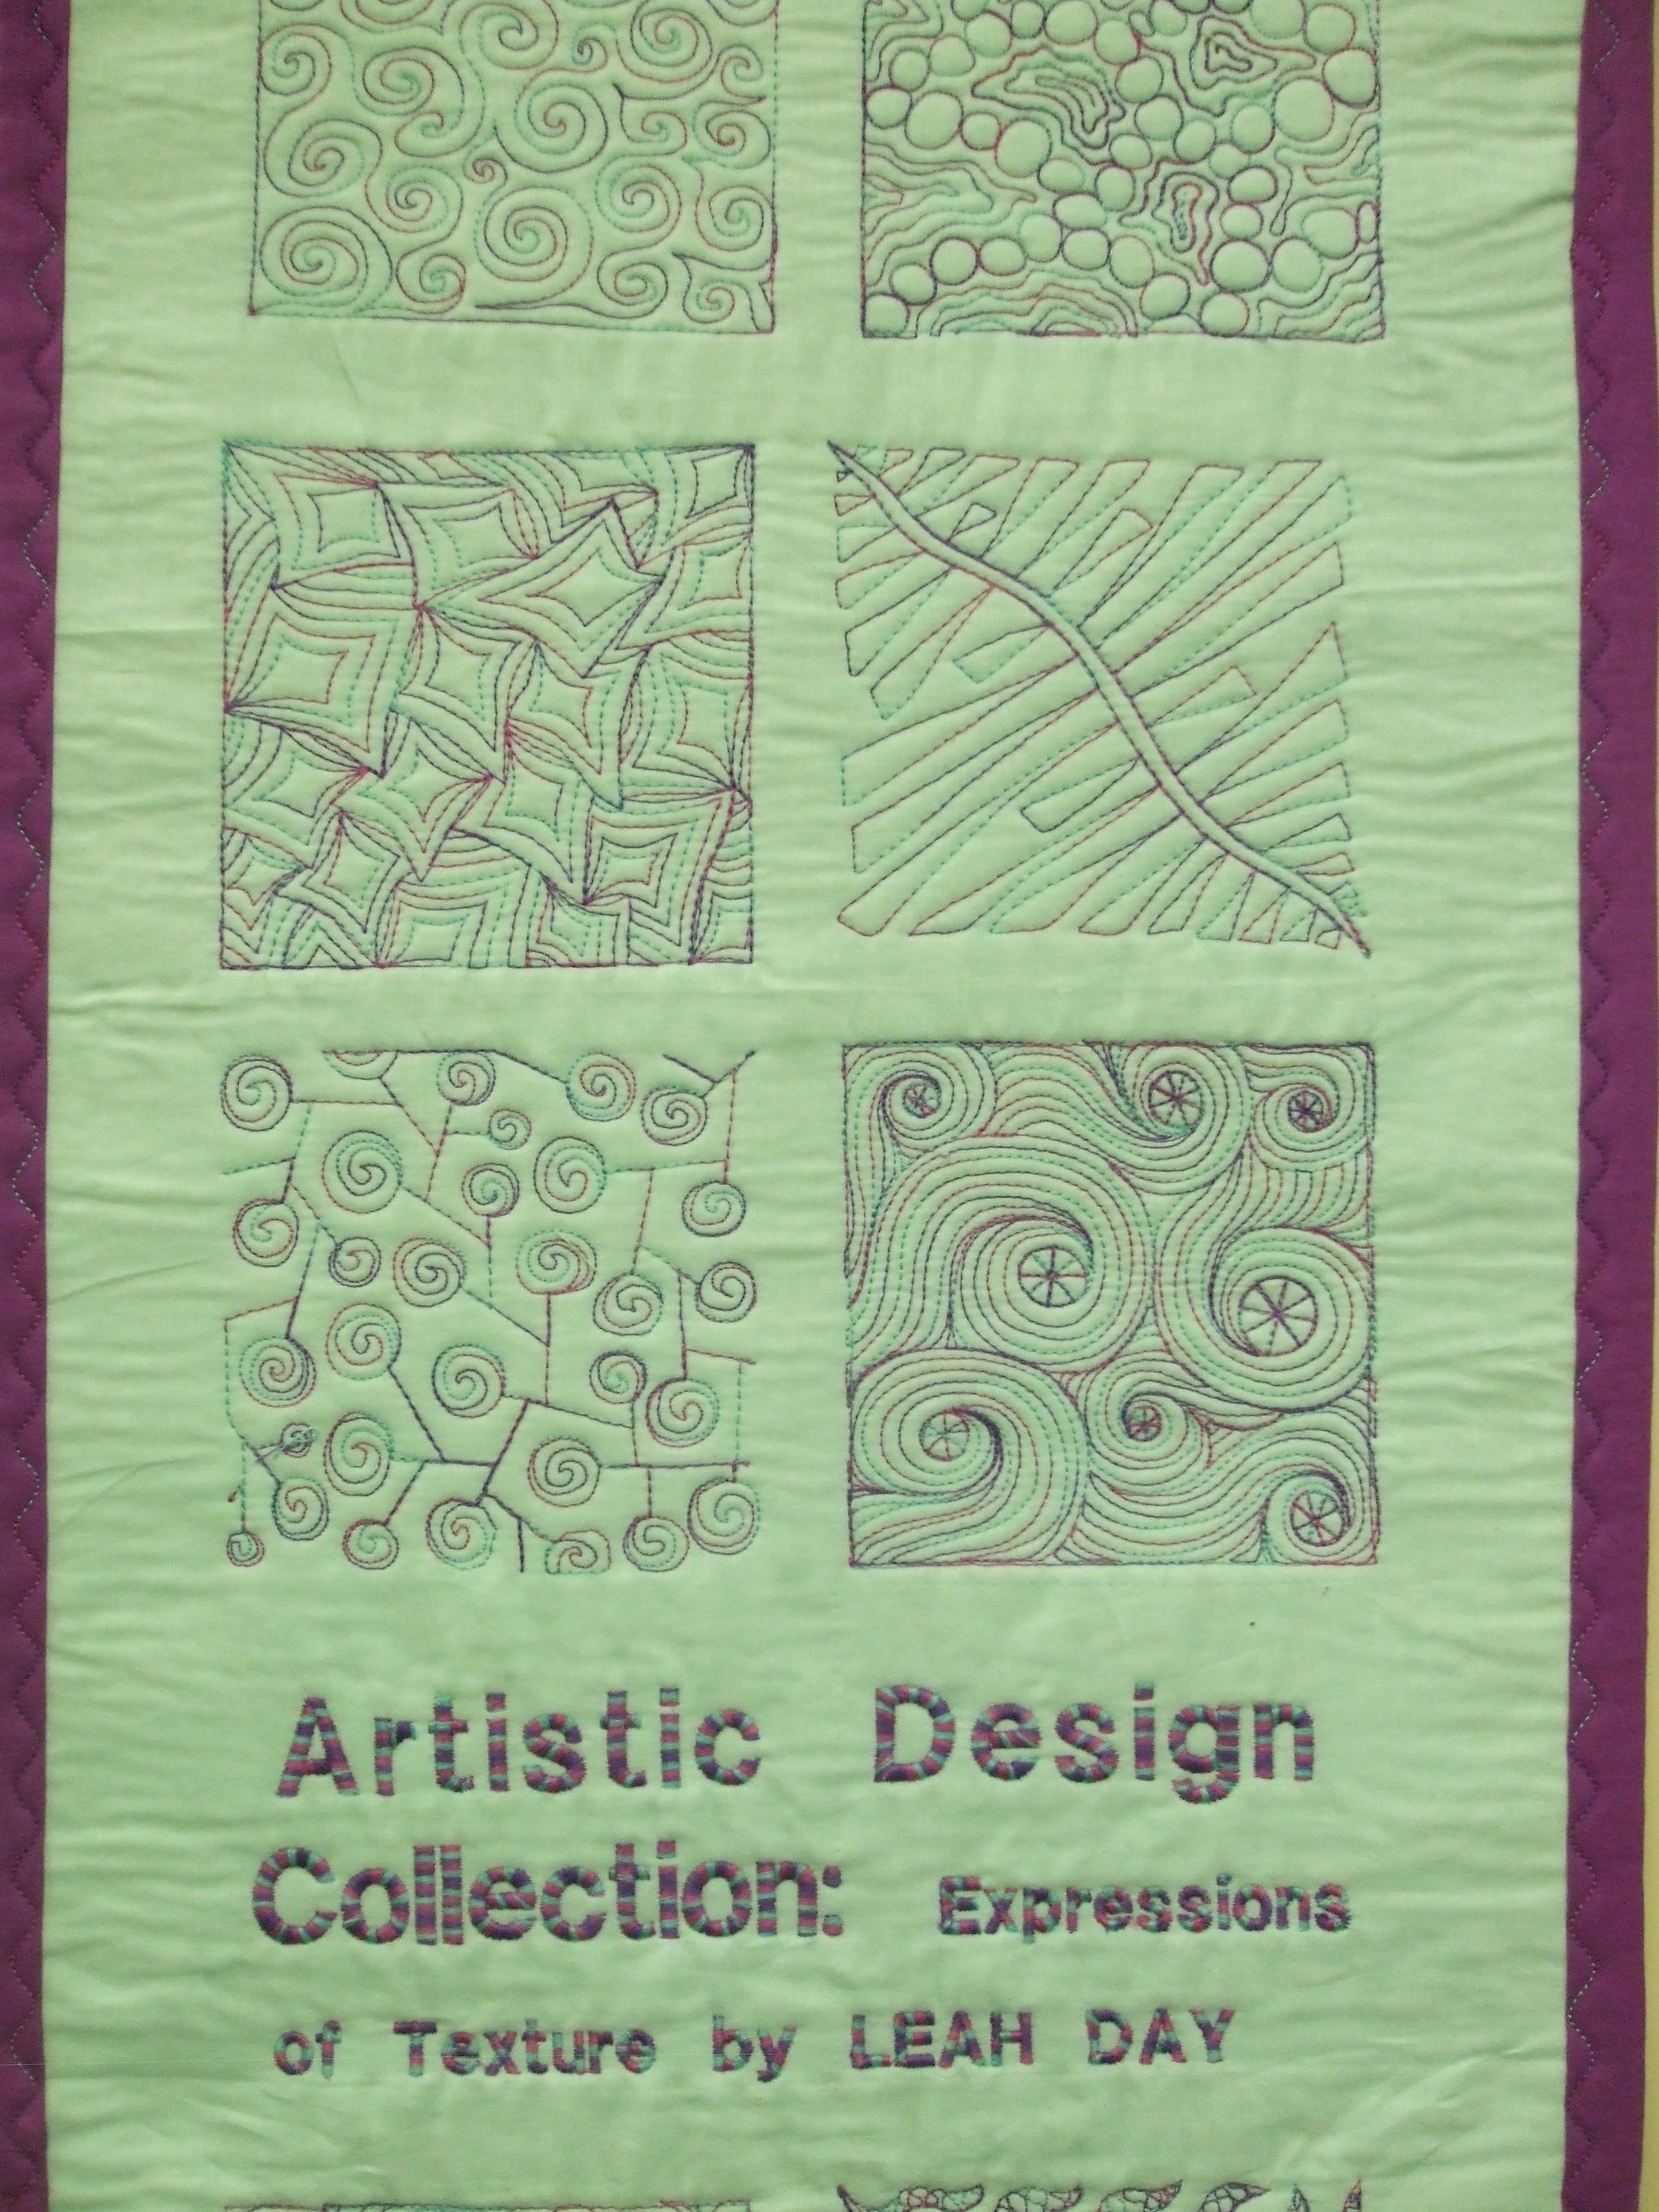 ARTISTIC EMBROIDERY DESIGN COLLECTIONS: EXPRESSIONS OF TEXTURE by LEAH DAY Janome Life